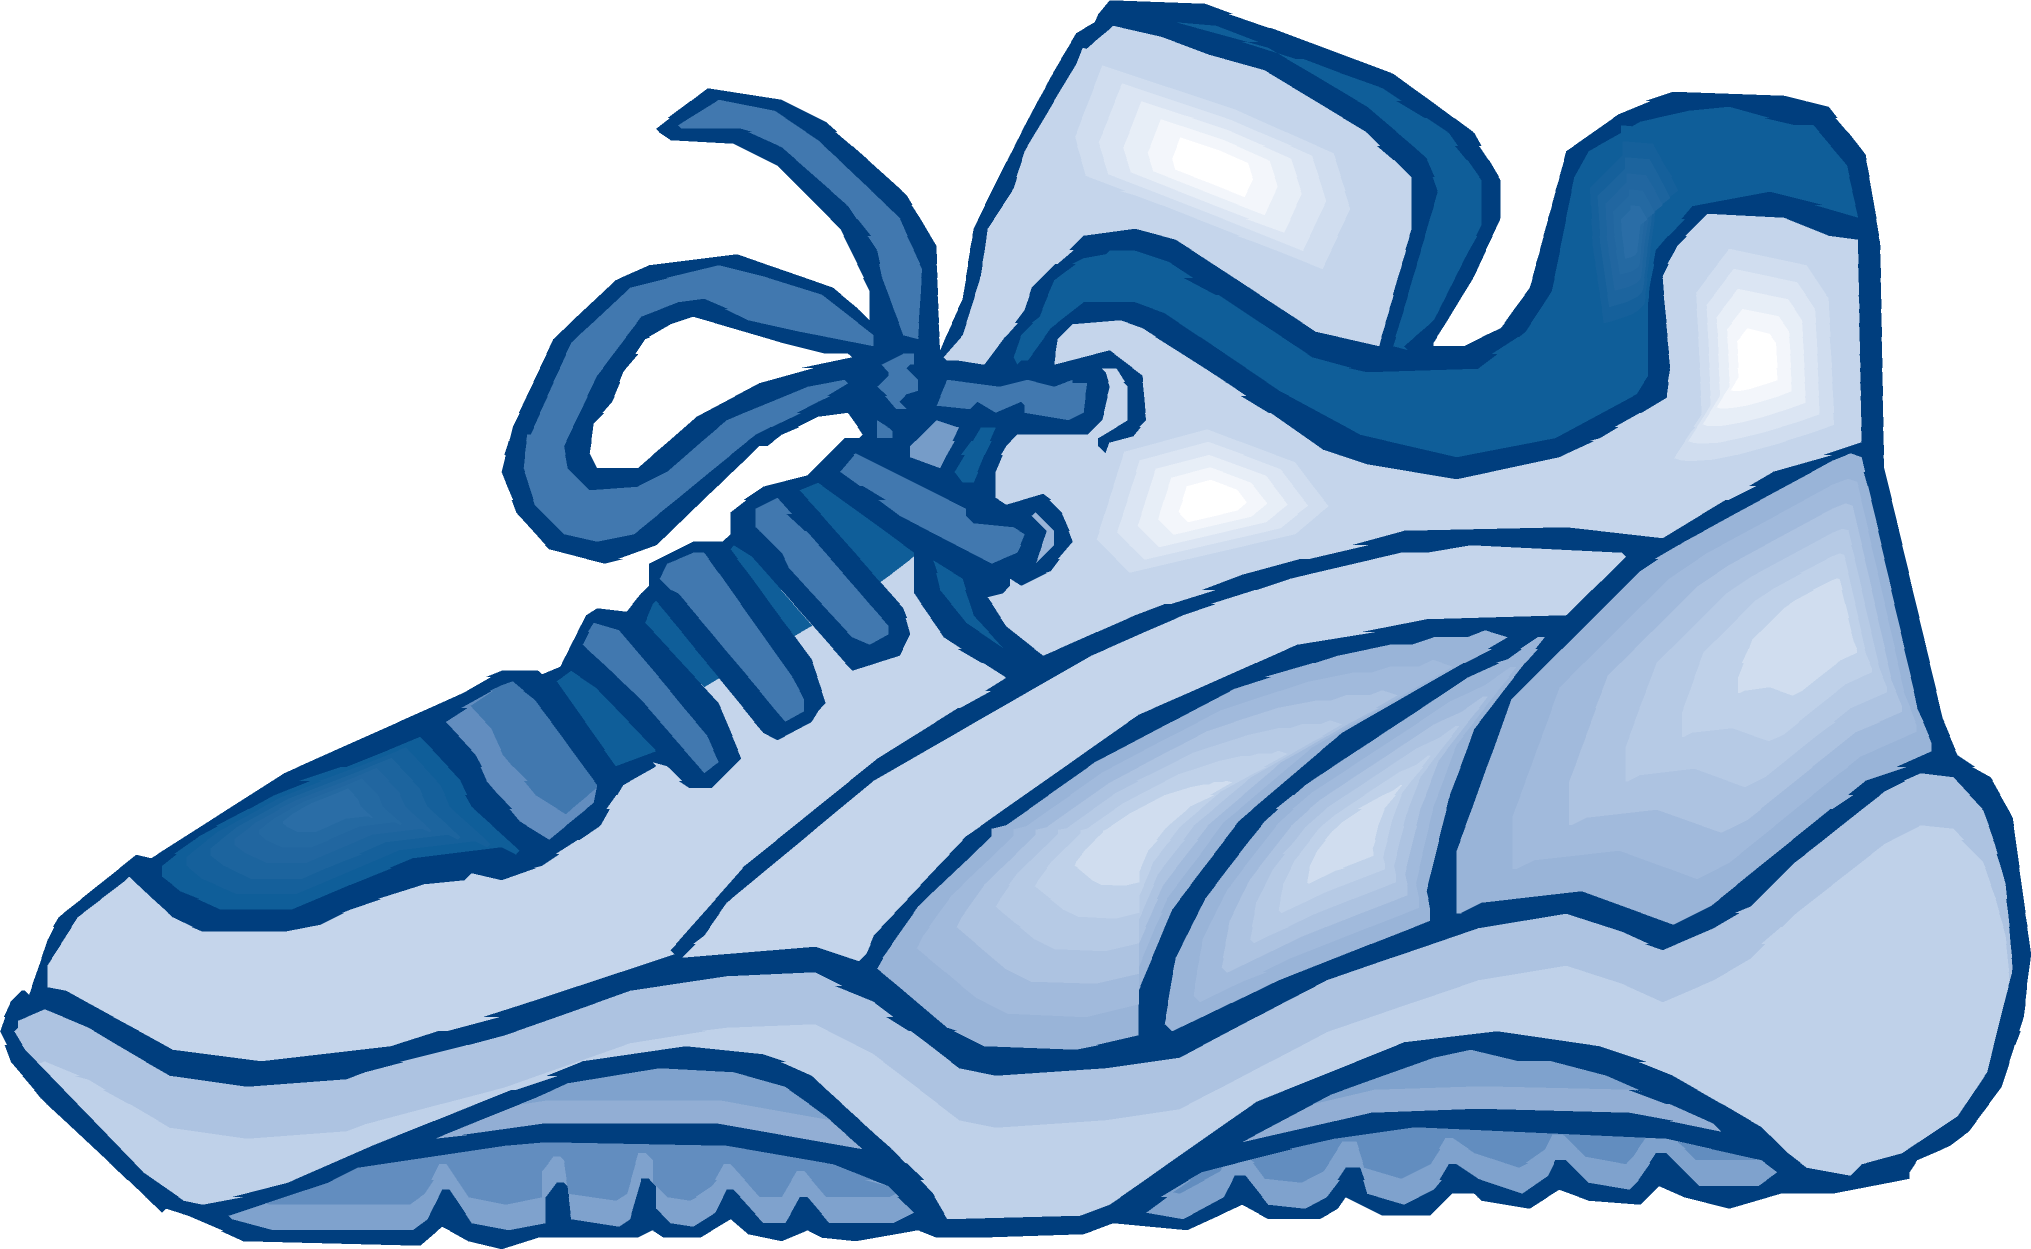 Tennis shoe border clipart image Shoes Cliparts   Free download best Shoes Cliparts on ... image